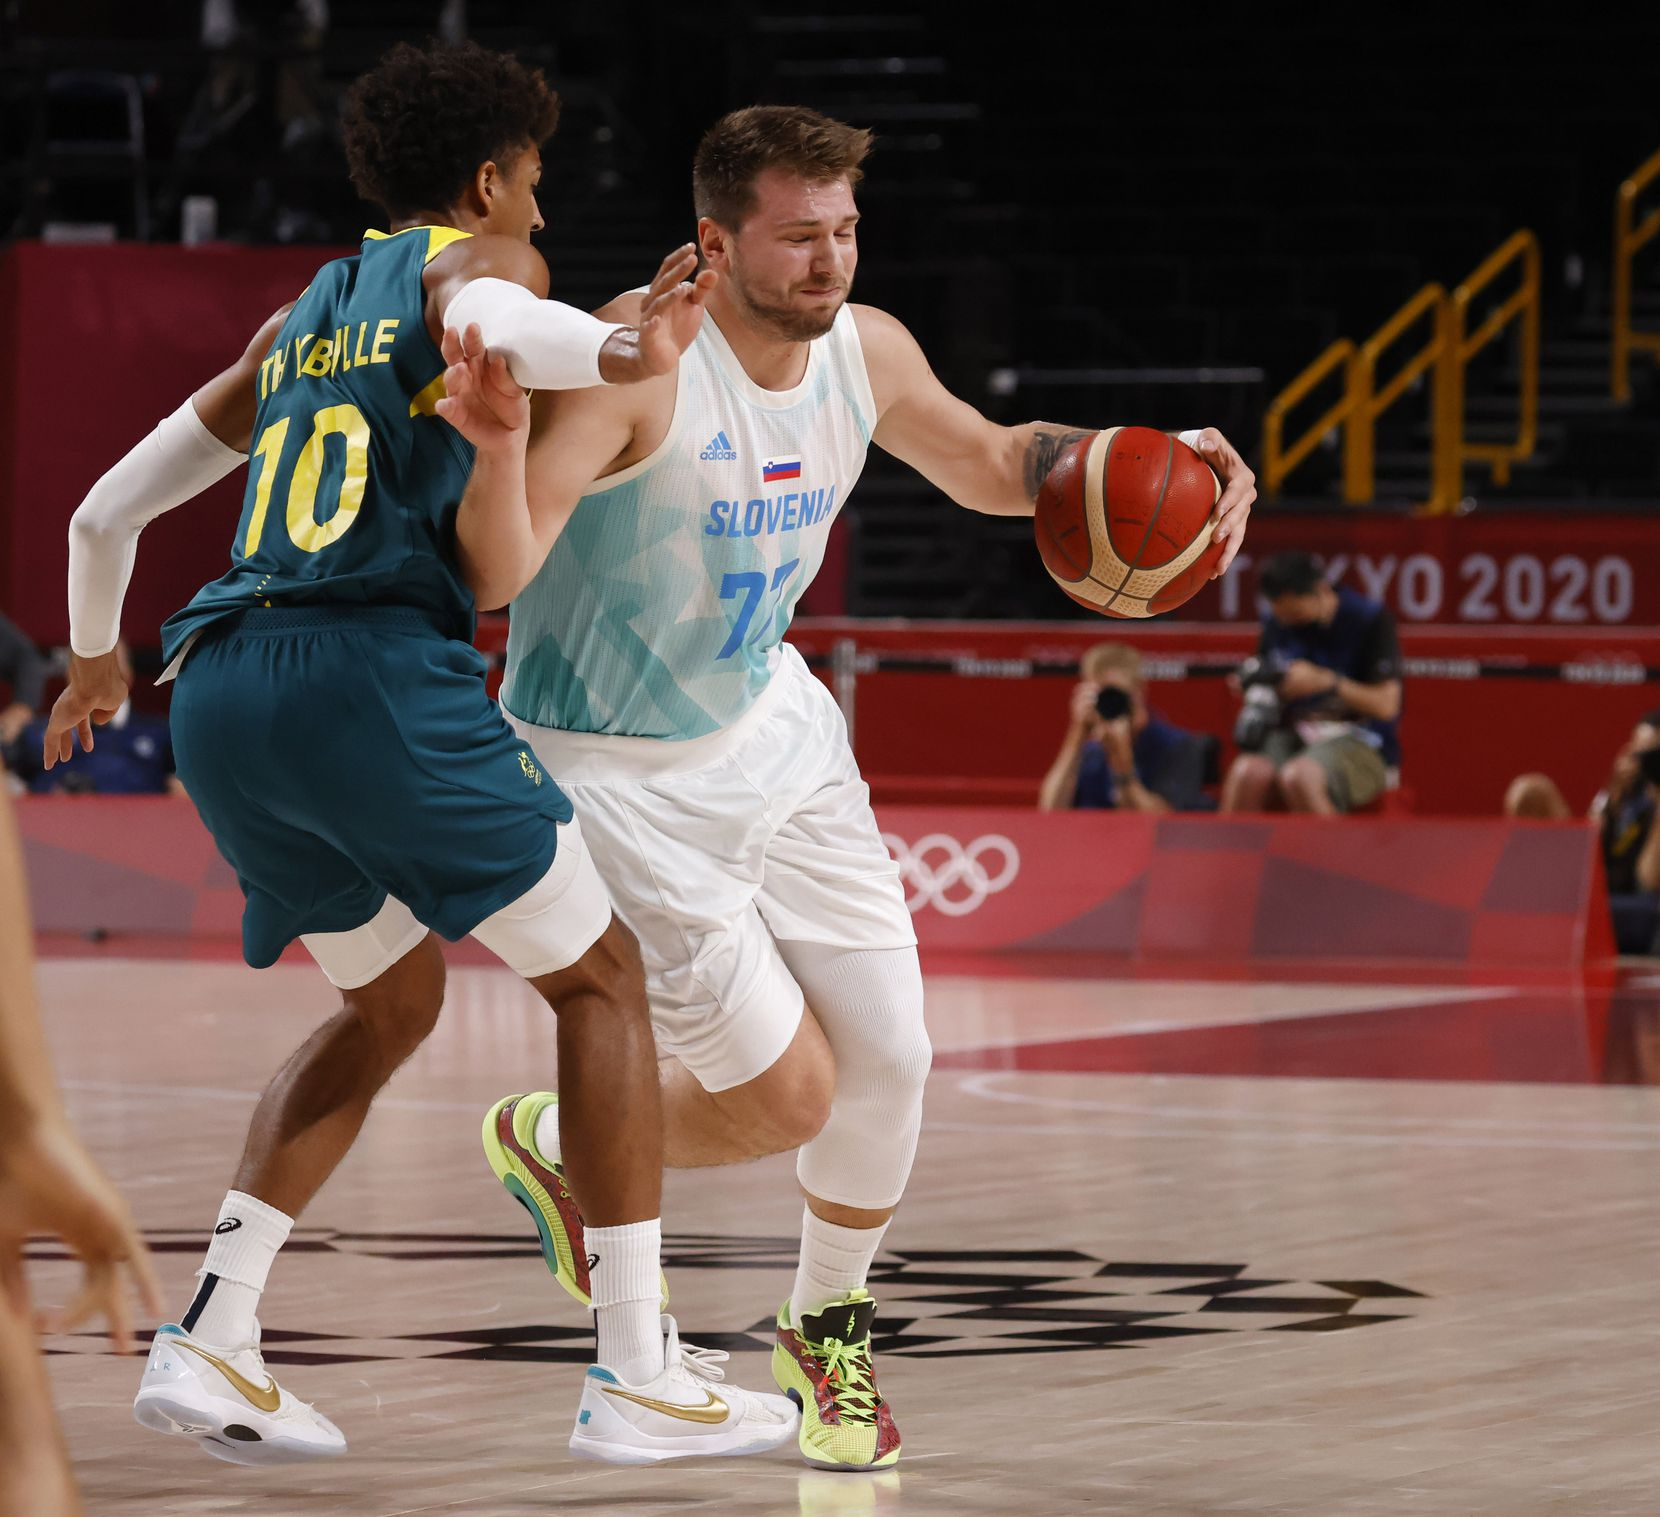 Slovenia's Luka Doncic (77) drives on Australia's Matisse Thybulle (10) during the first quarter of play in the bronze medal basketball game at the postponed 2020 Tokyo Olympics at Saitama Super Arena, on Saturday, August 7, 2021, in Saitama, Japan. (Vernon Bryant/The Dallas Morning News)